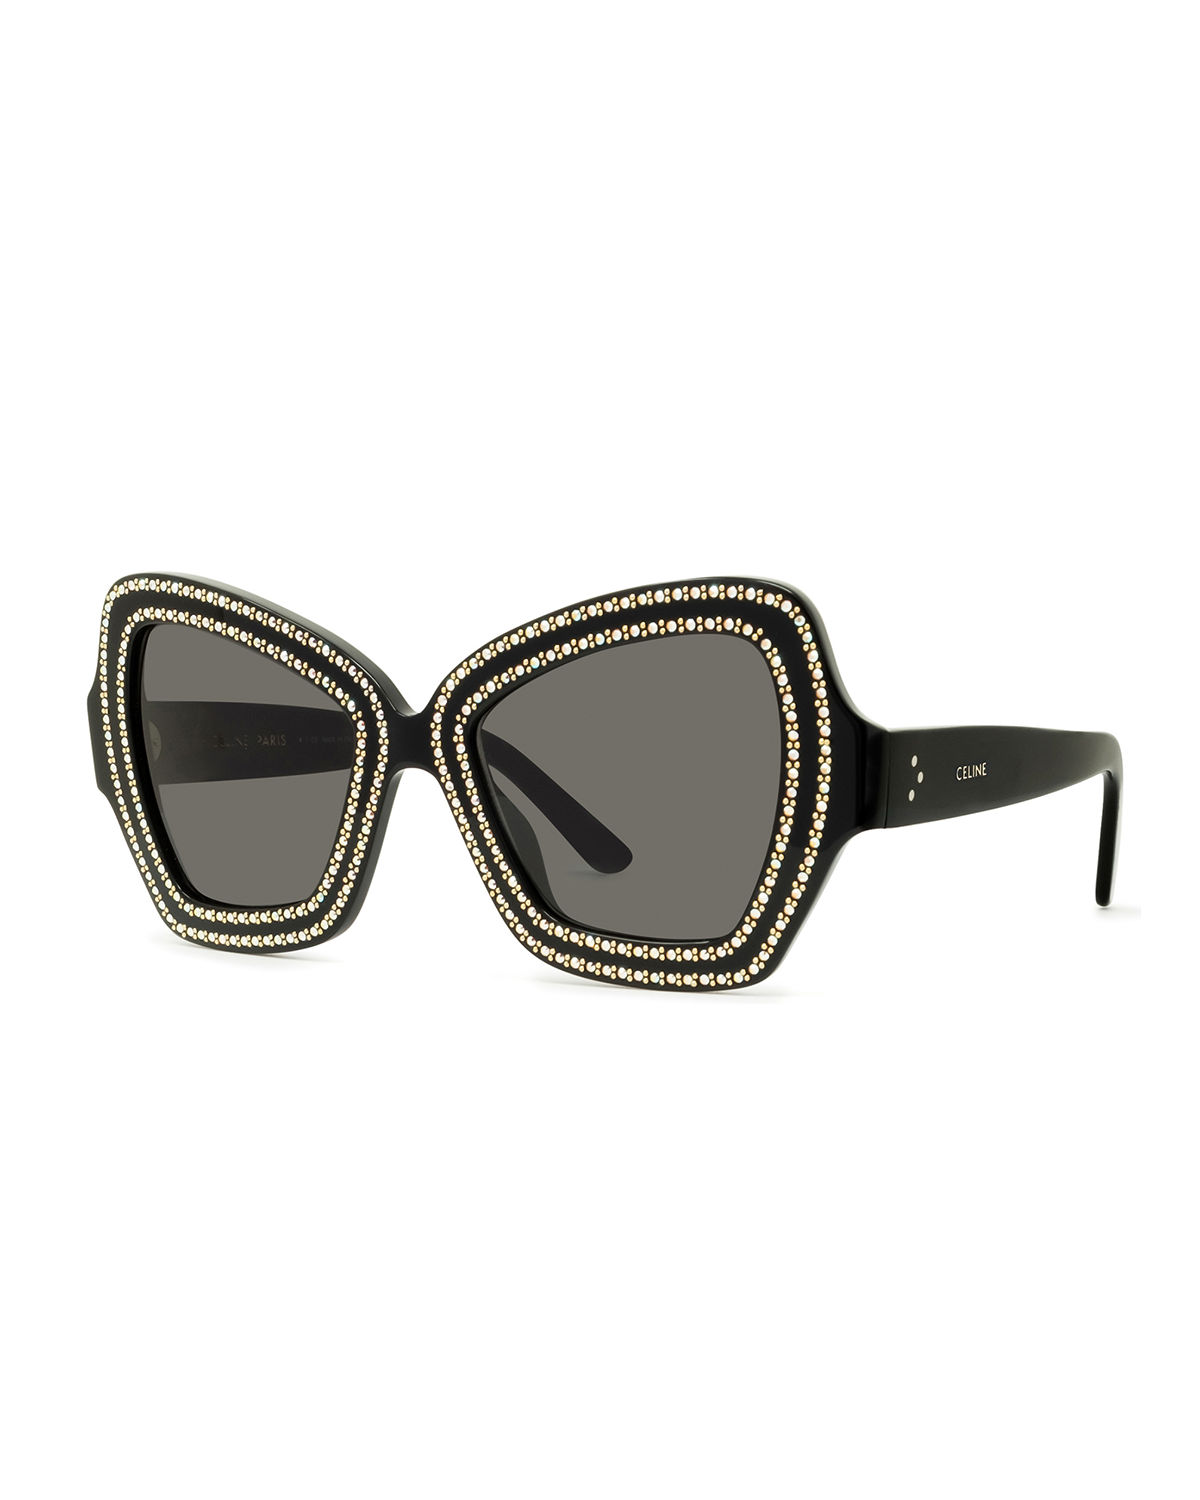 cfb465cc7c99a Celine Crystal Embellished Butterfly Acetate Sunglasses